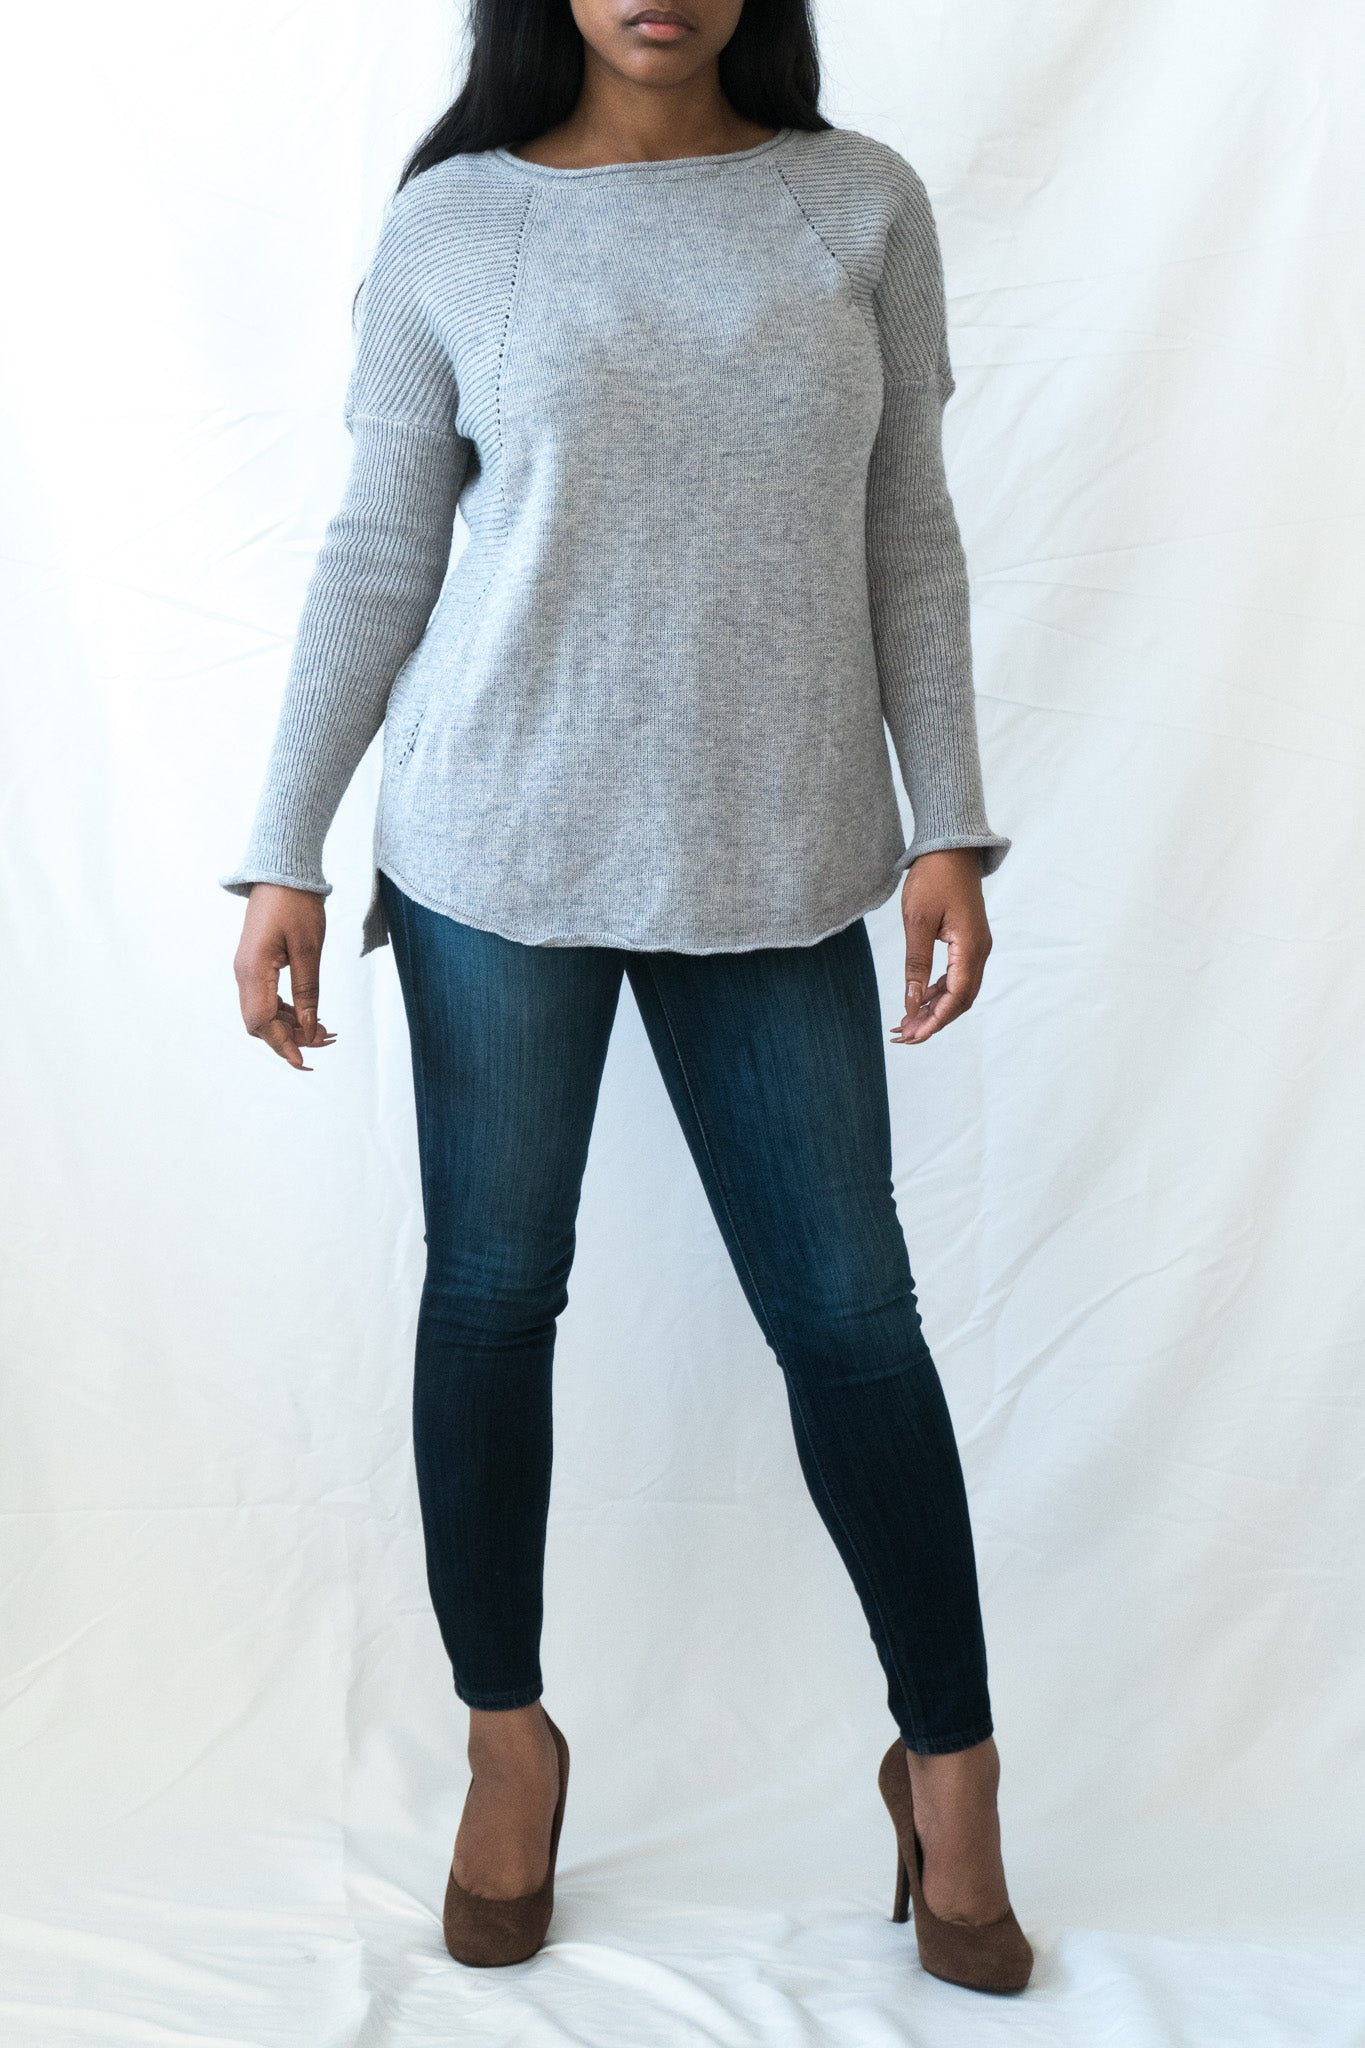 Your Favorite Knit Sweater - BLANK Wardrobe